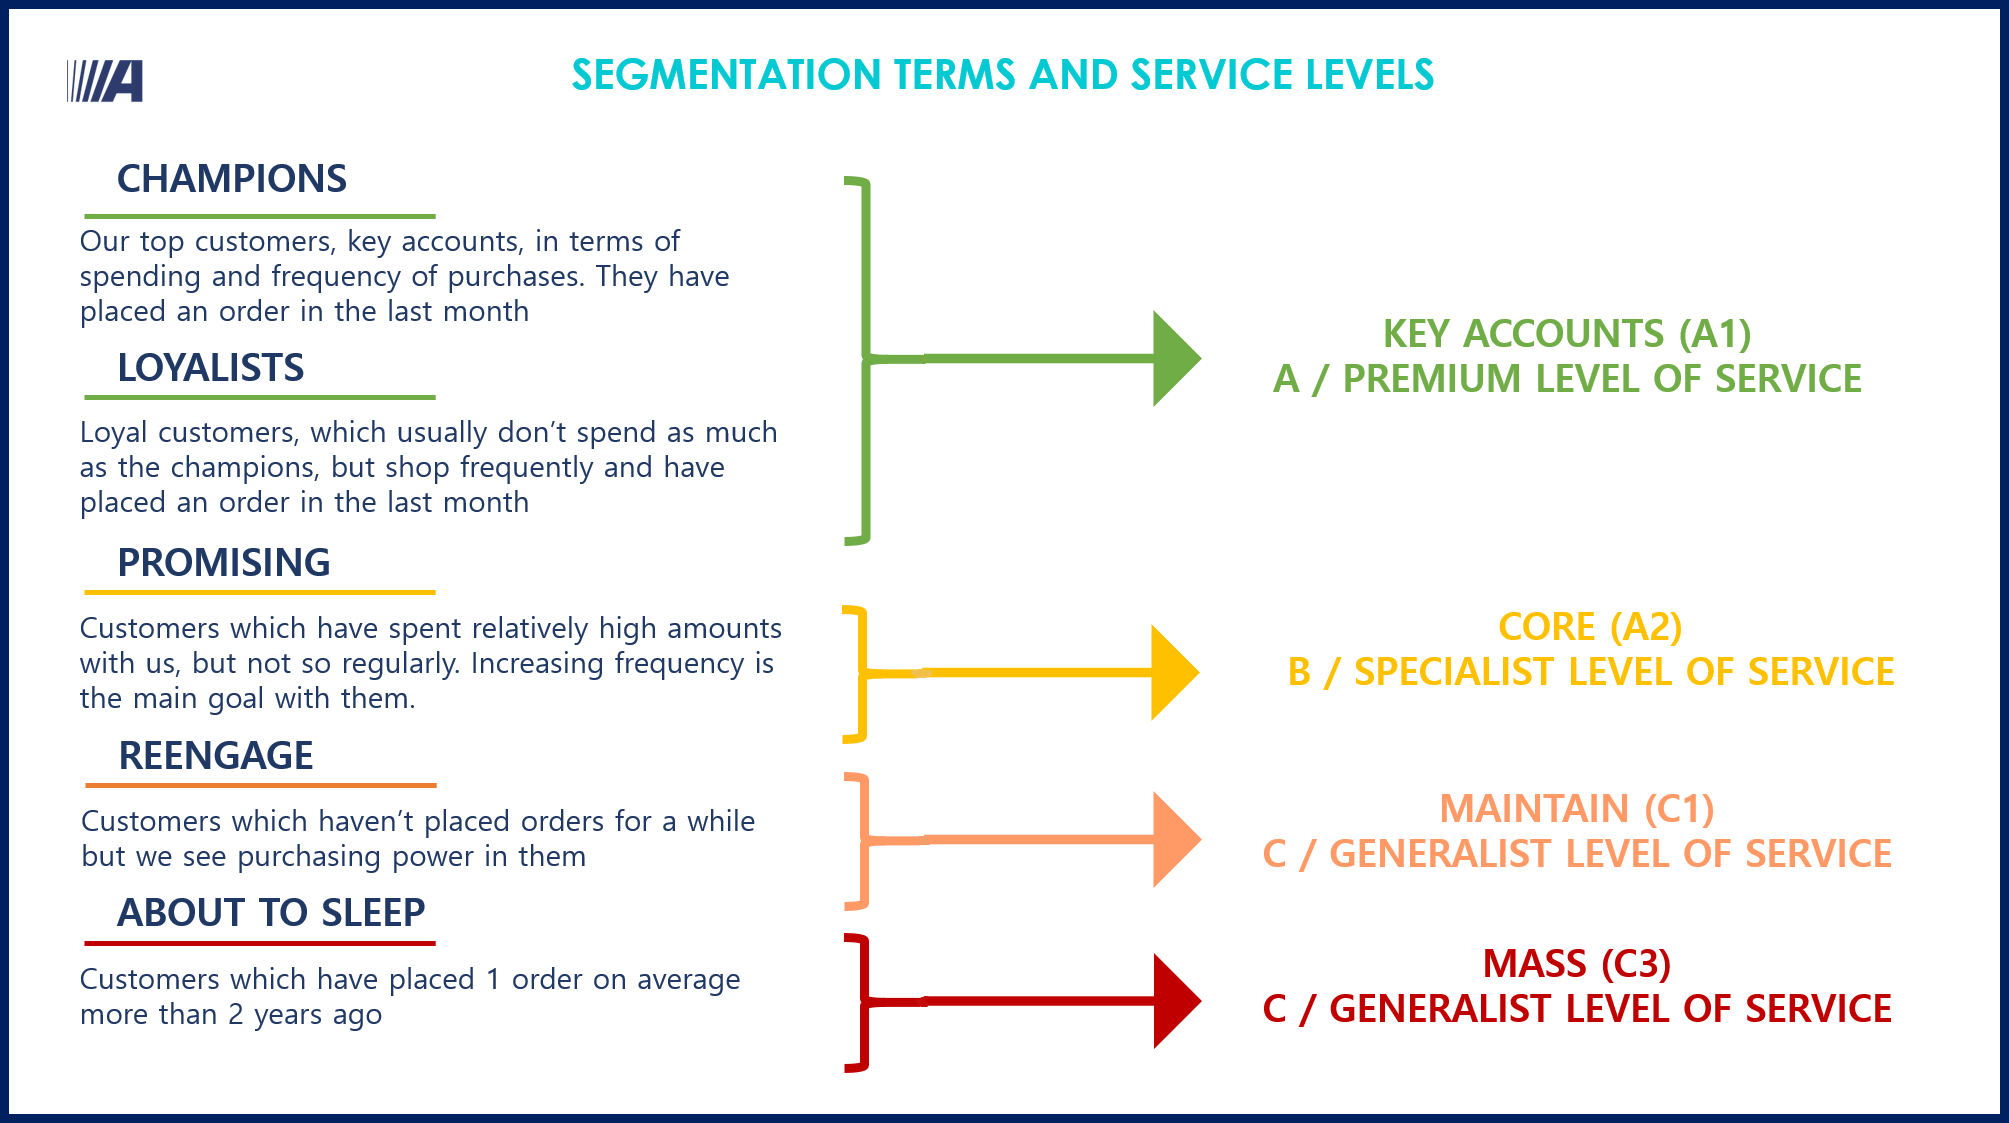 Segmentation terms and service levels